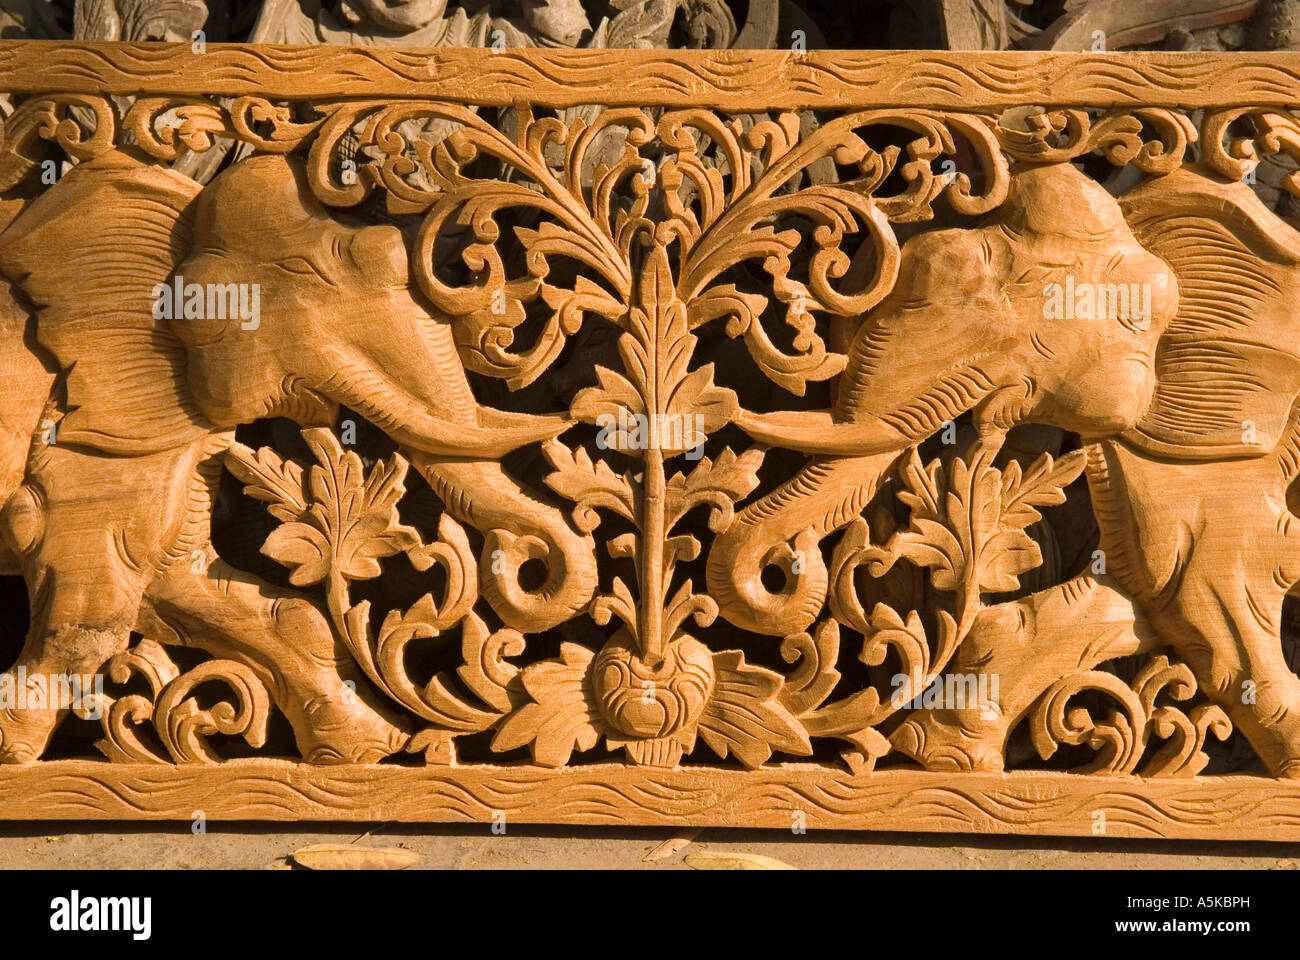 Wood carving elephant stock photos